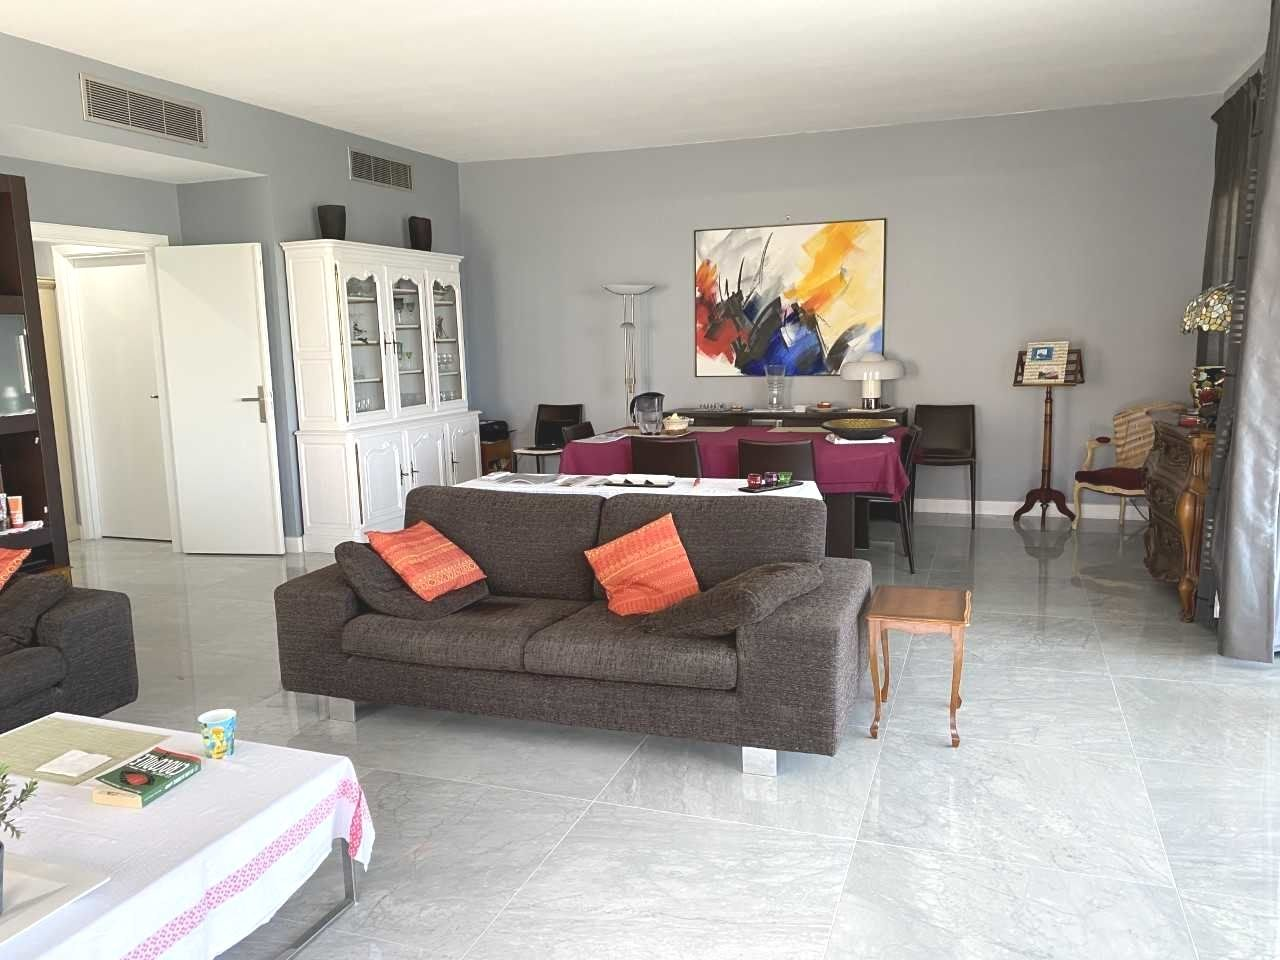 Cannes Apartment for sale Sea View, 175sqm 4 bedrooms